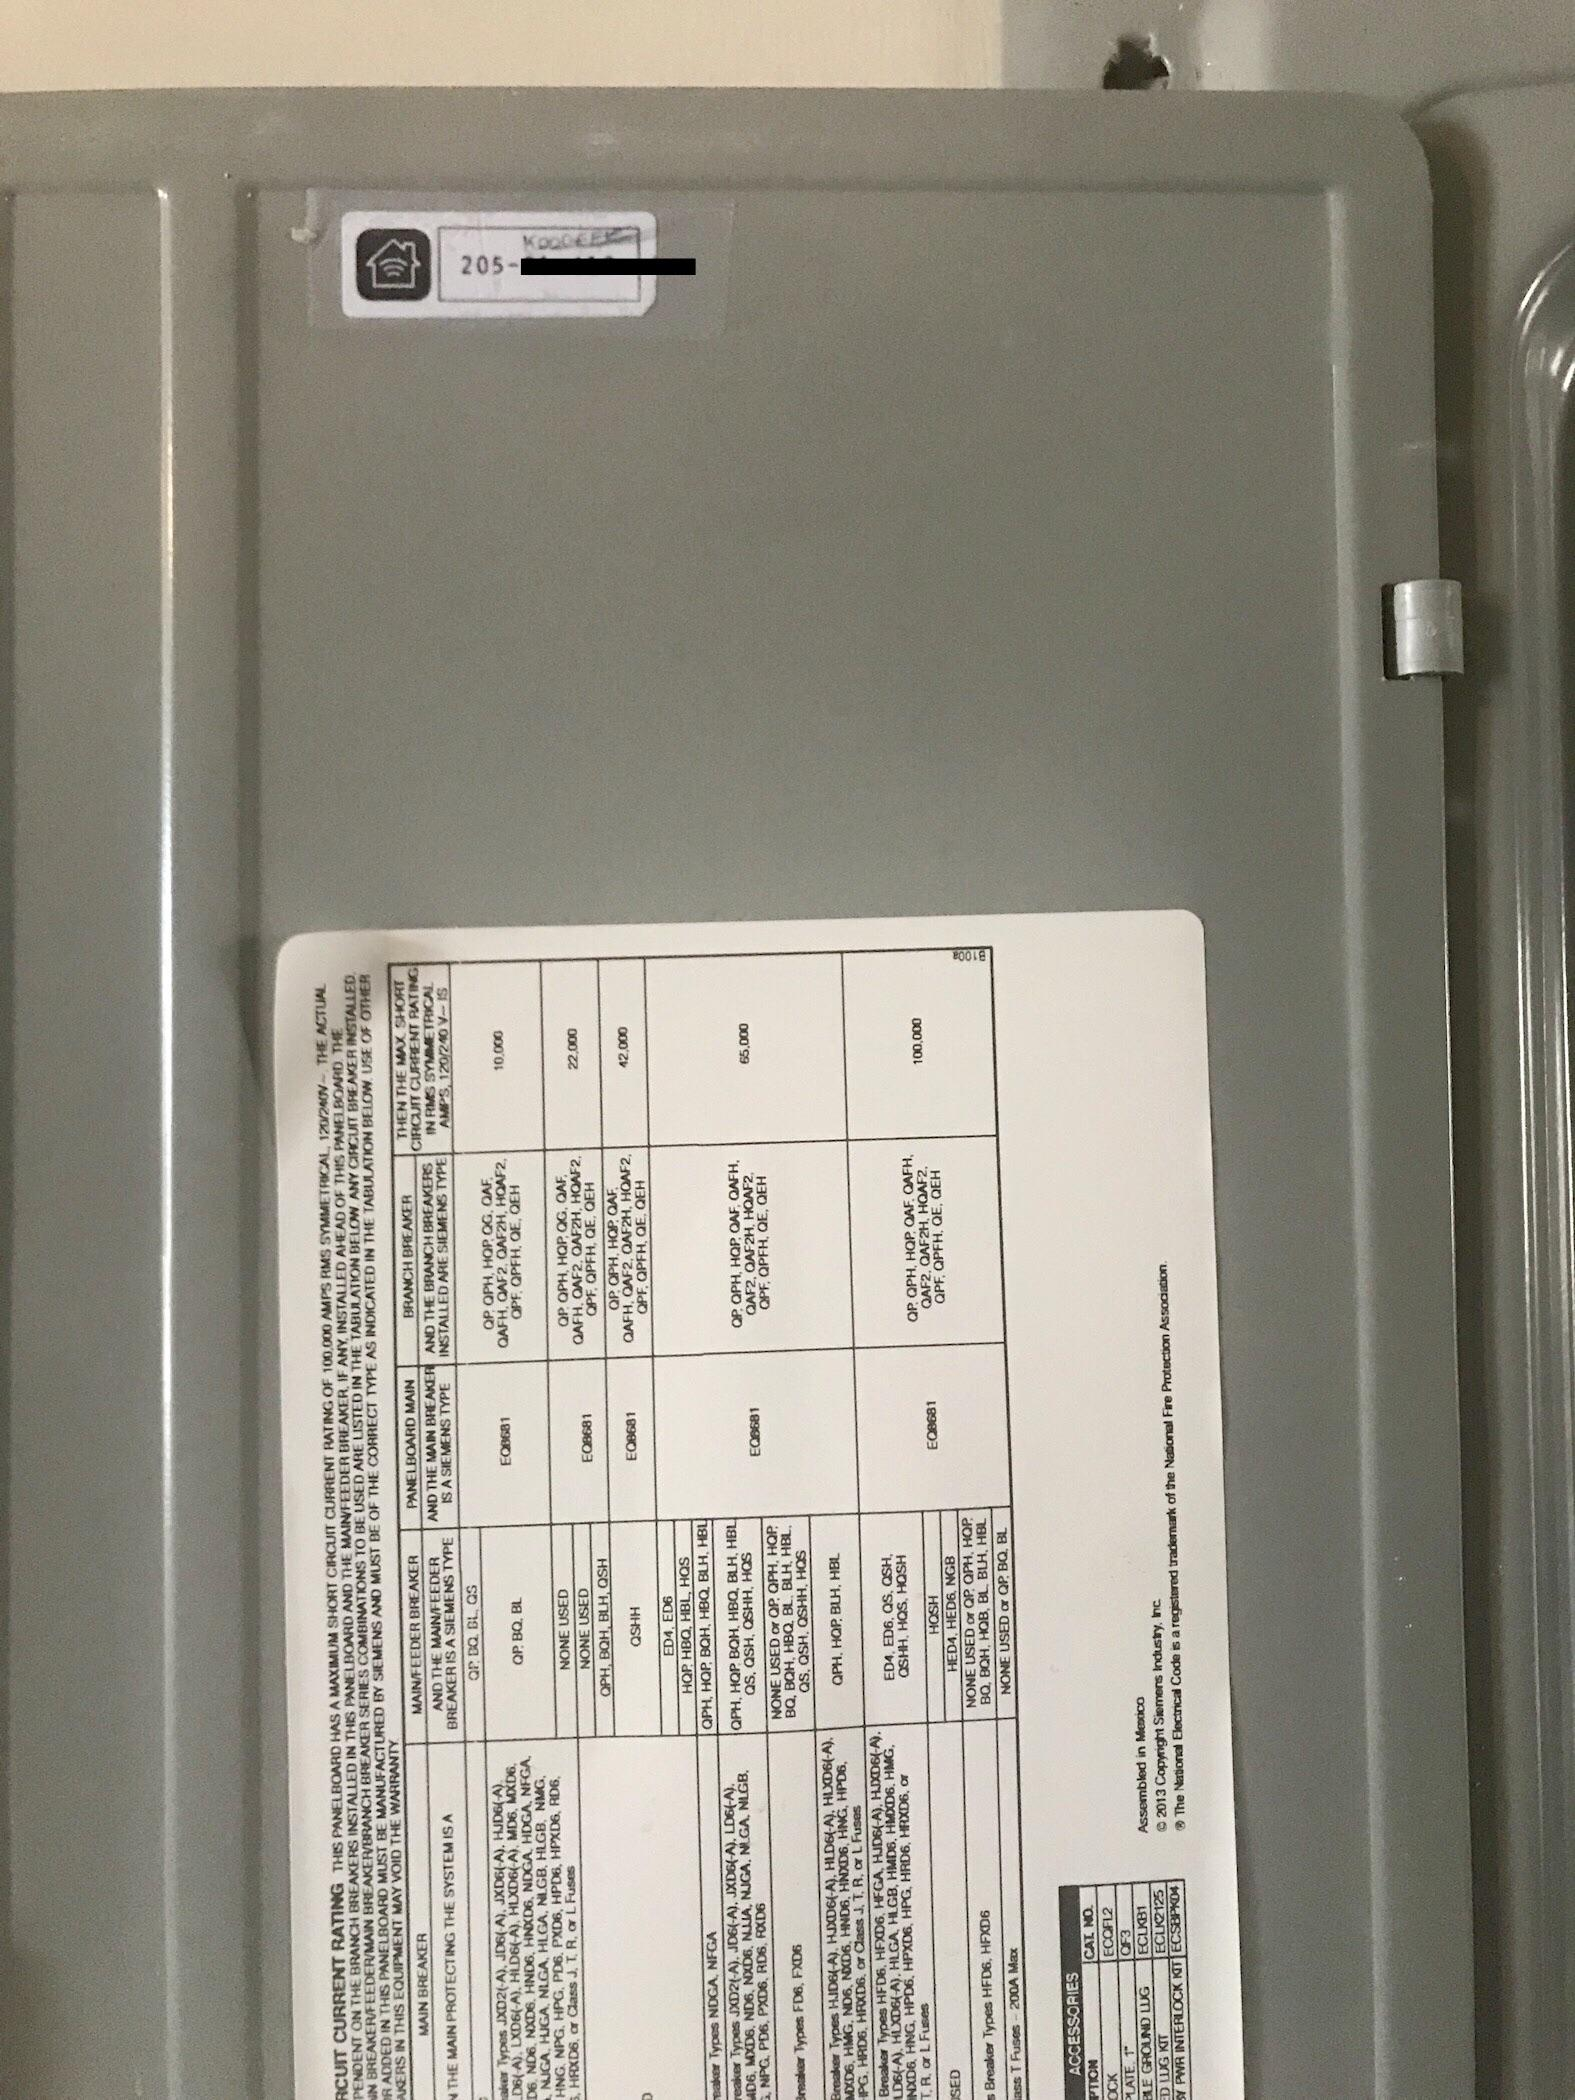 hight resolution of tip layout homekit codes in the fuse box with switch codes next to rh reddit com house electrical fuse boxes house electrical fuse boxes